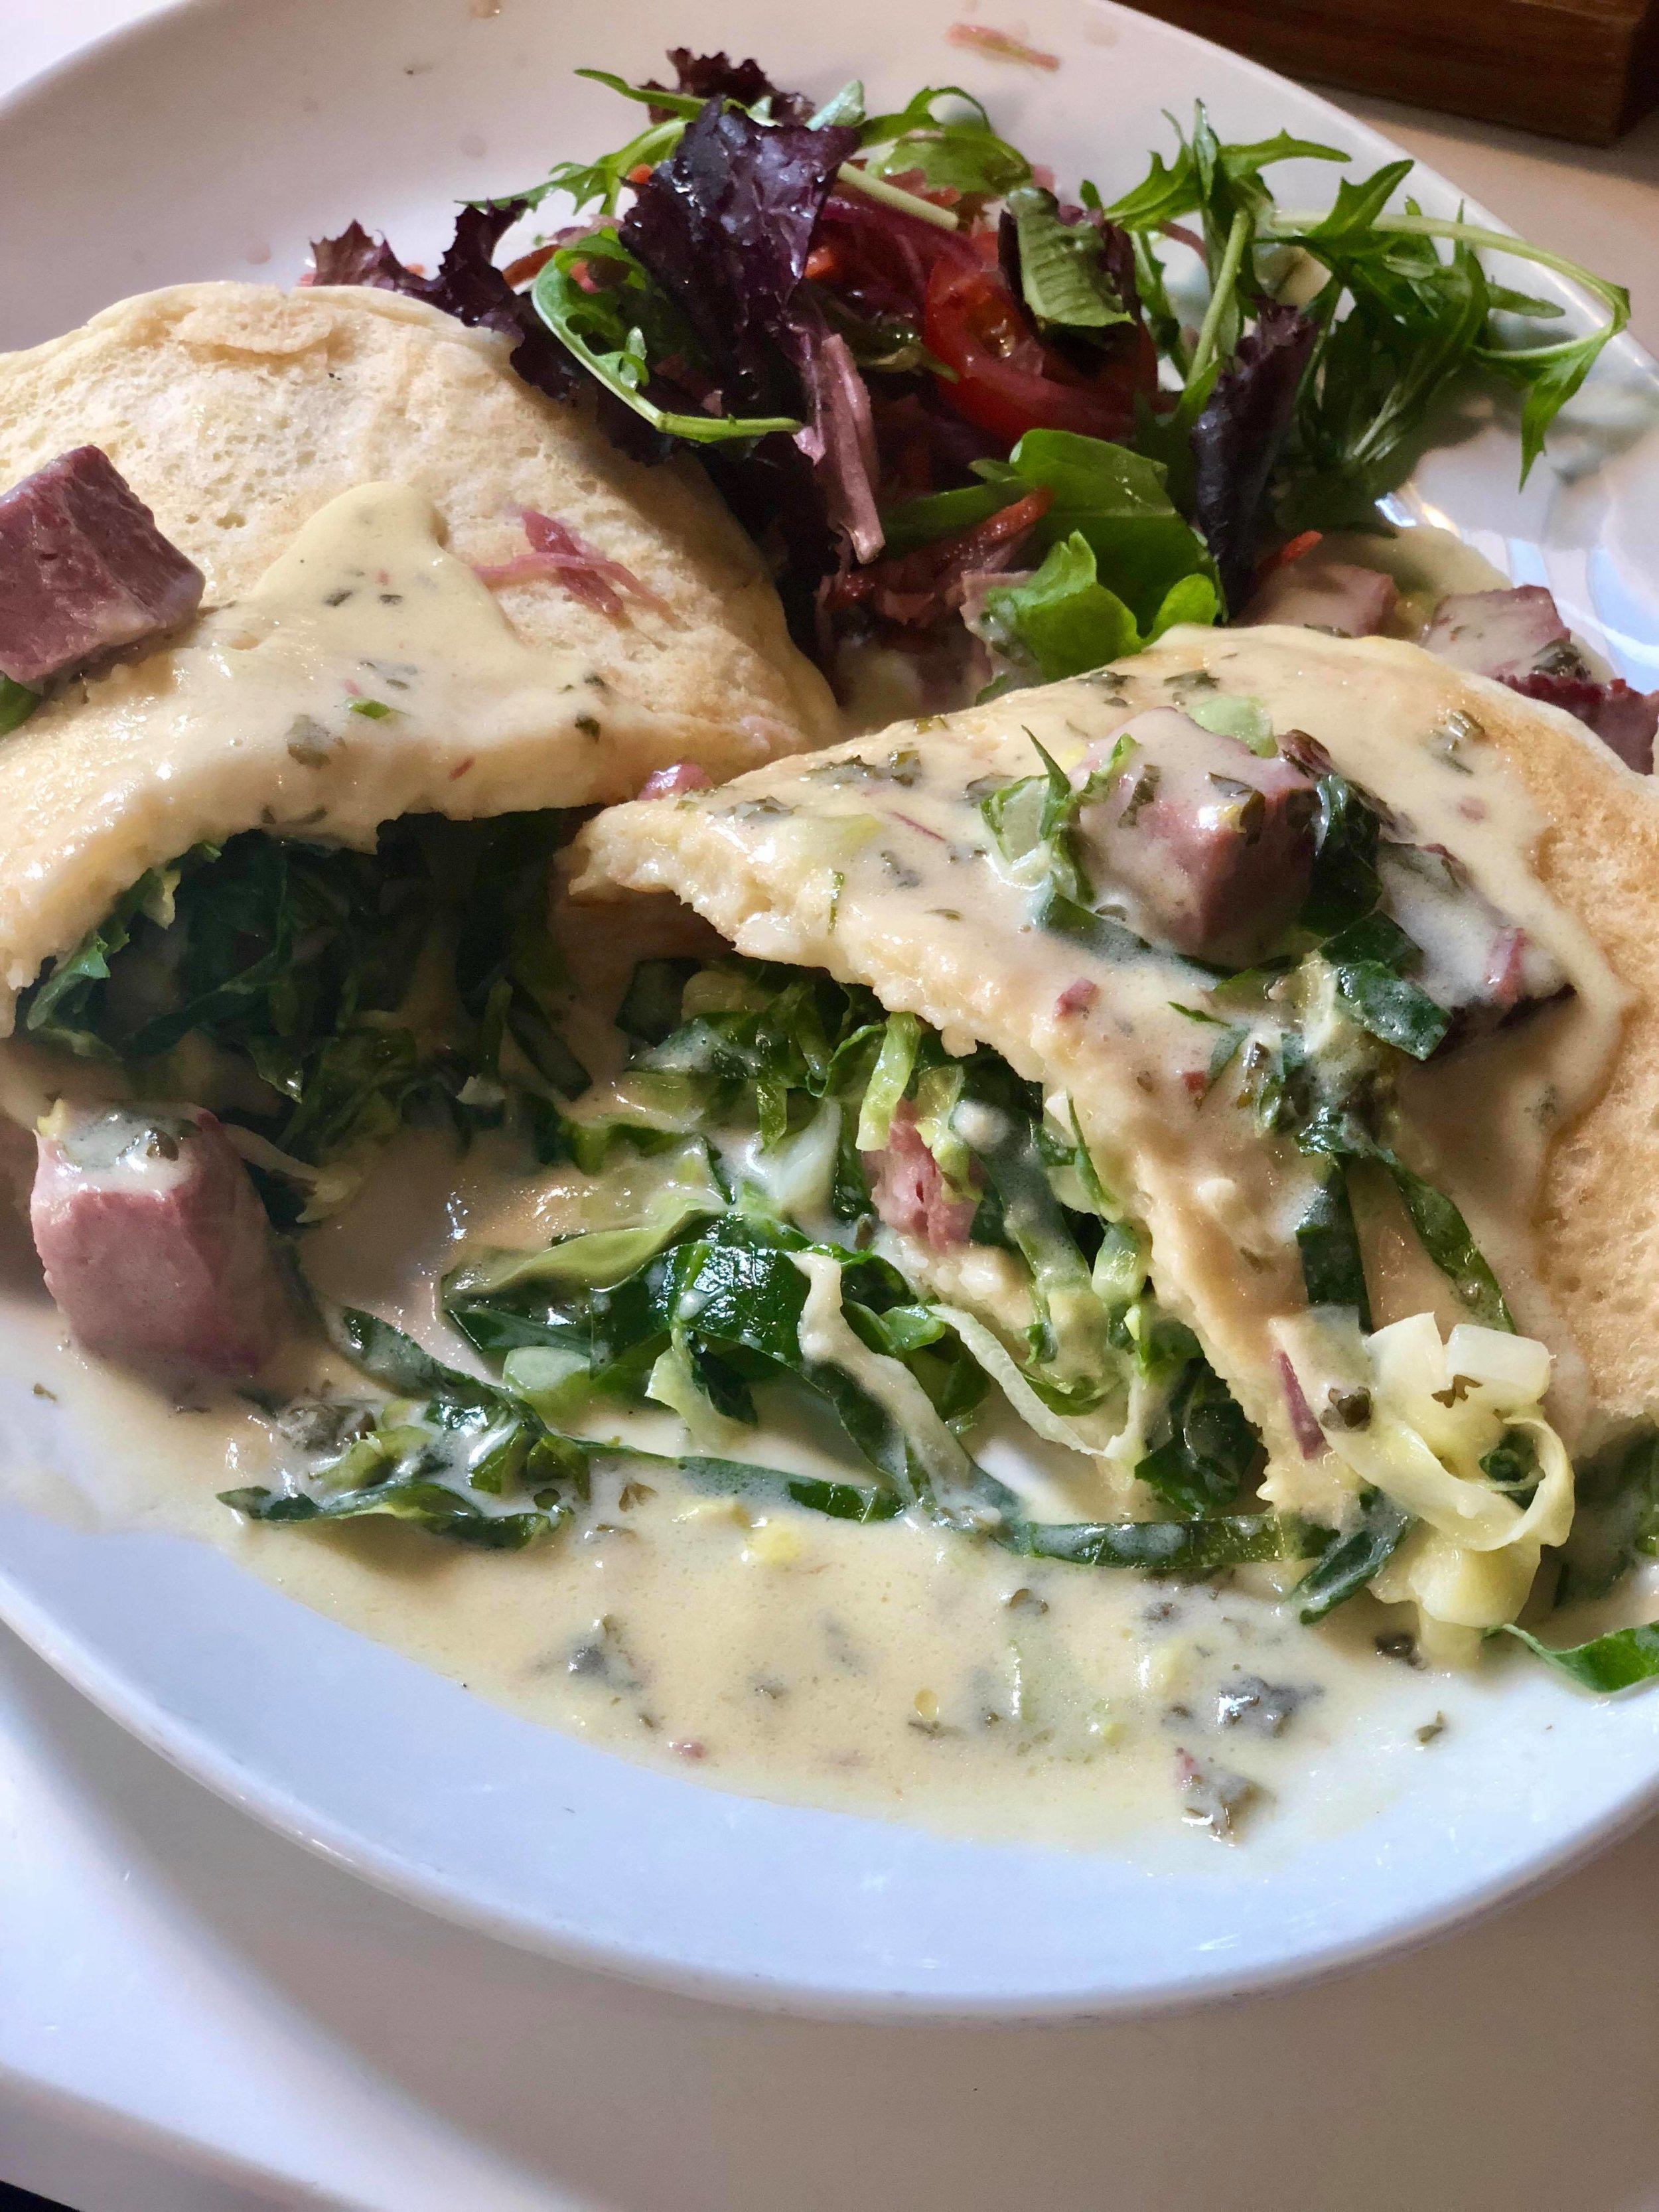 - Corned Beef Boxty: diced corned beef and cabbage served in a creamy parsley sauce, wrapped in a boxty pancake.